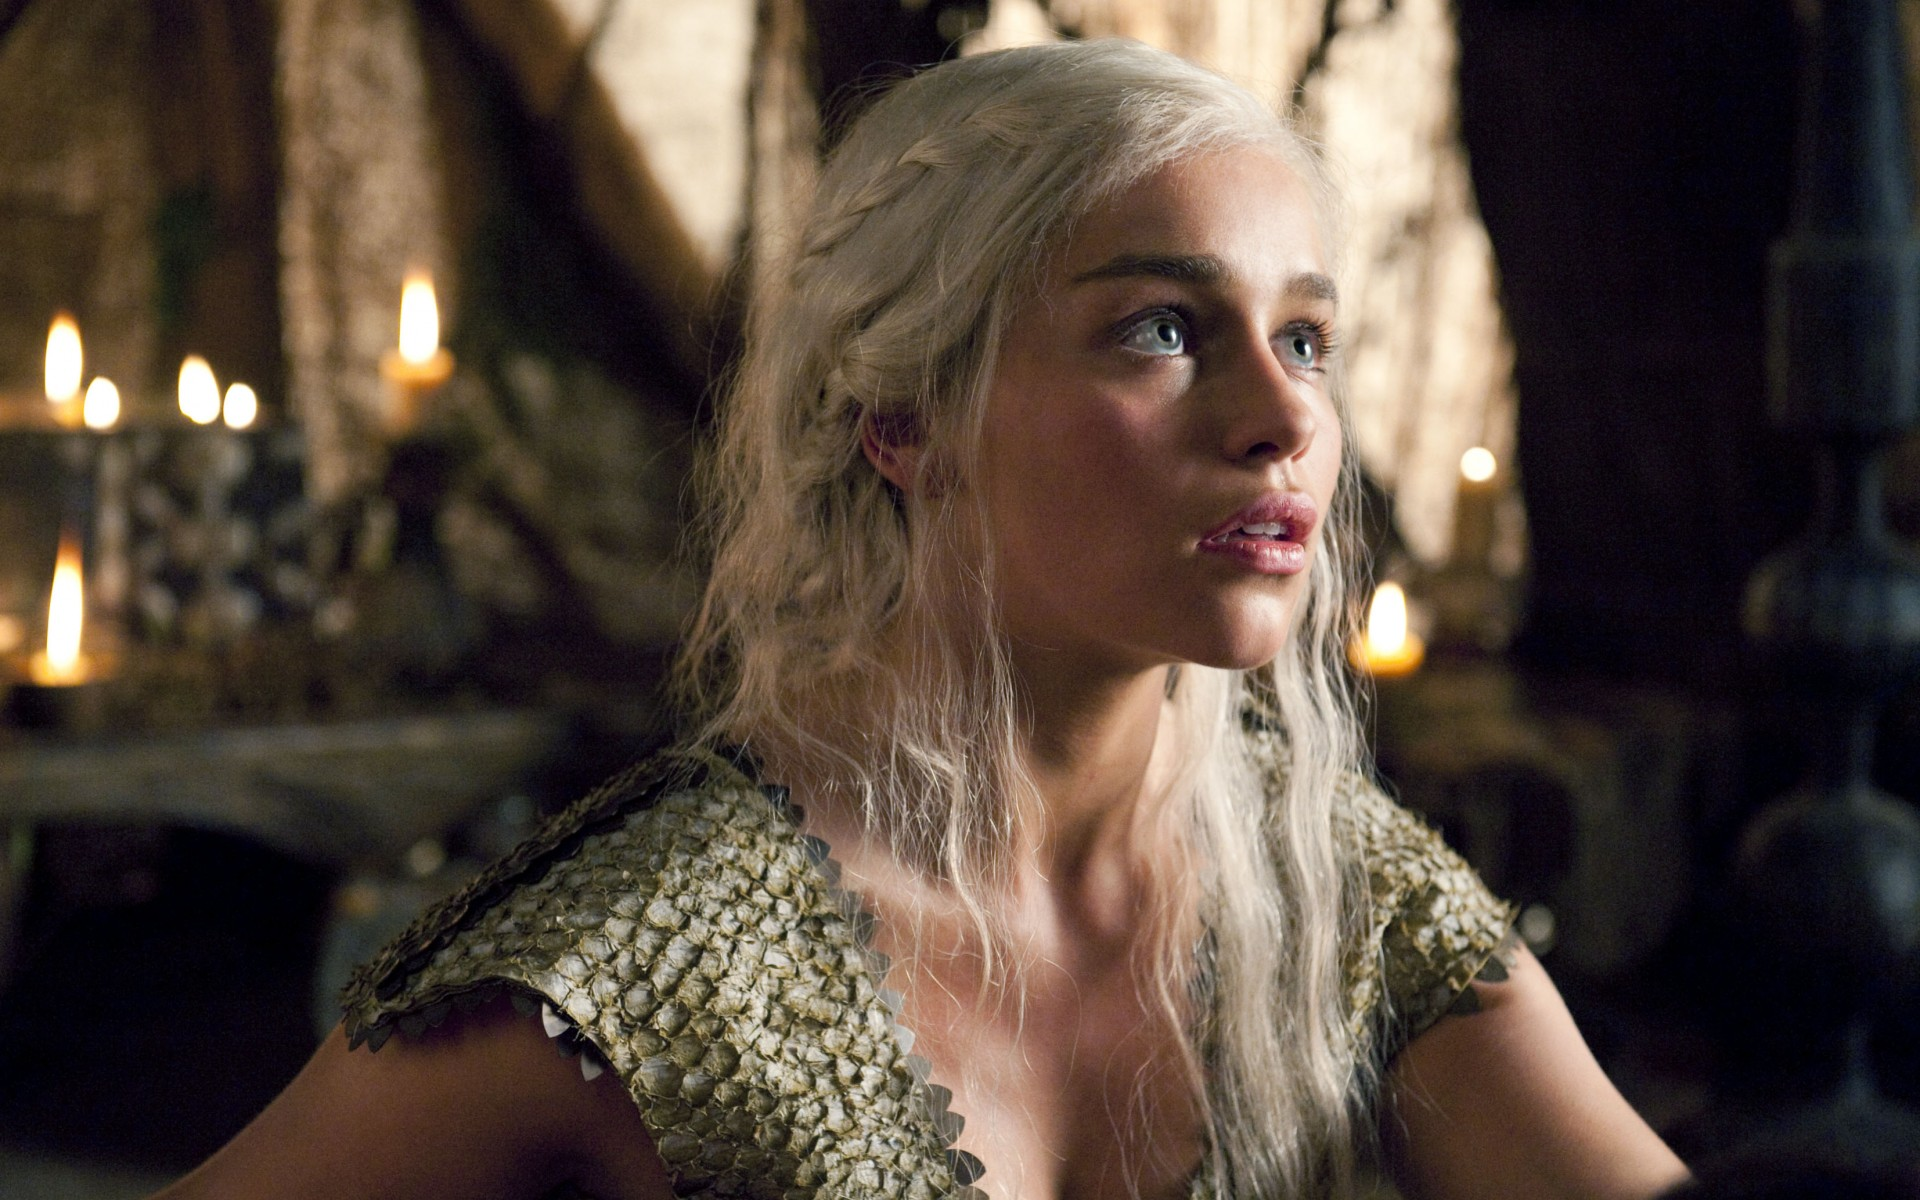 daenerys-targaryen-serie-TV-game-of-thrones